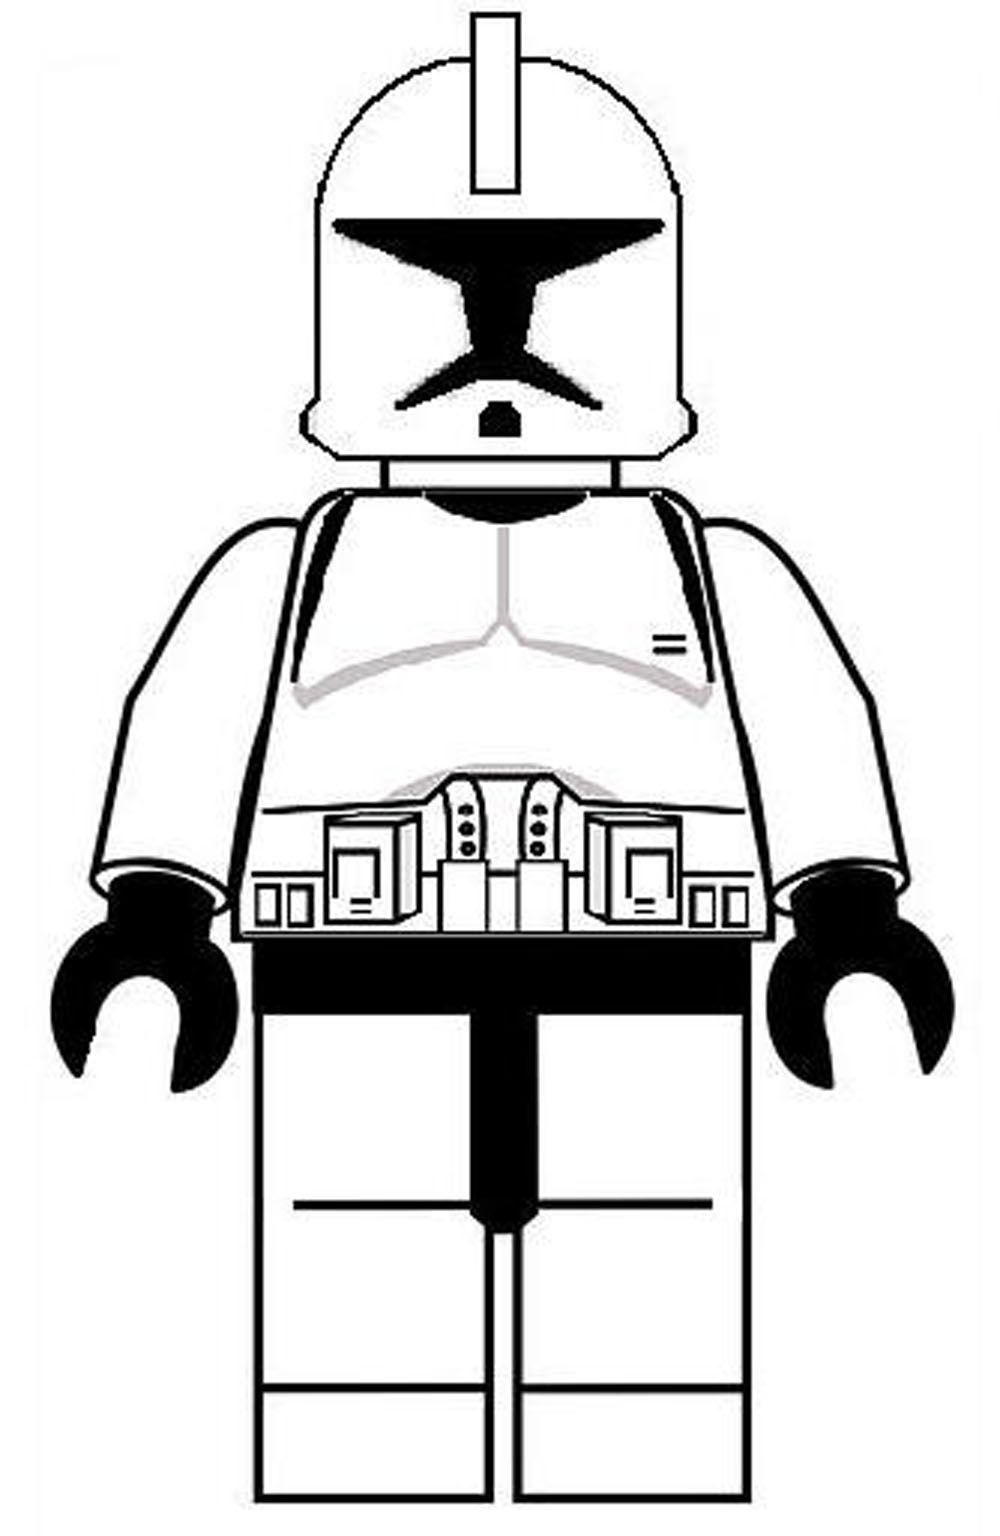 Ninjago coloring pages to color online - Lego Ninjago Coloring Pages Printable Printable Kids Colouring Pages